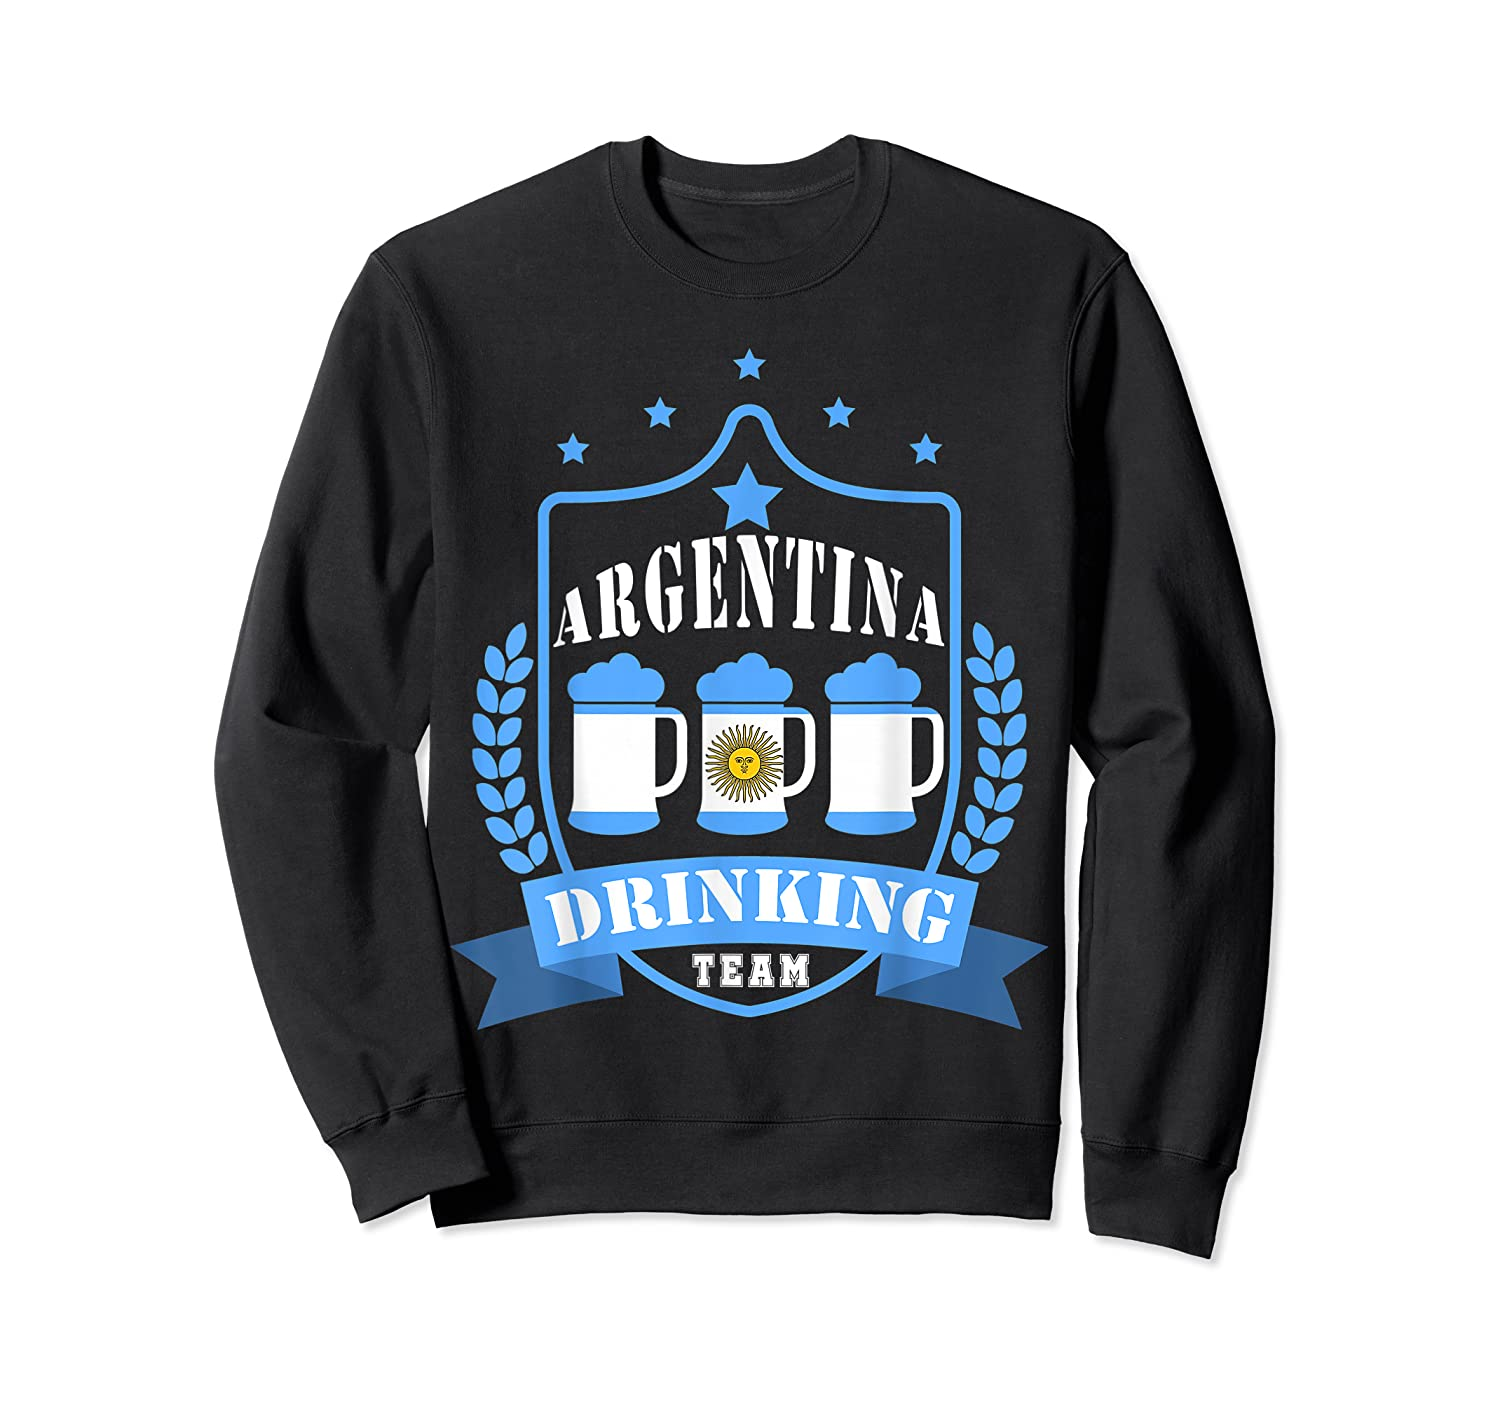 Beer Argentina Drinking Team Casual Argentina Flag T-shirt Crewneck Sweater